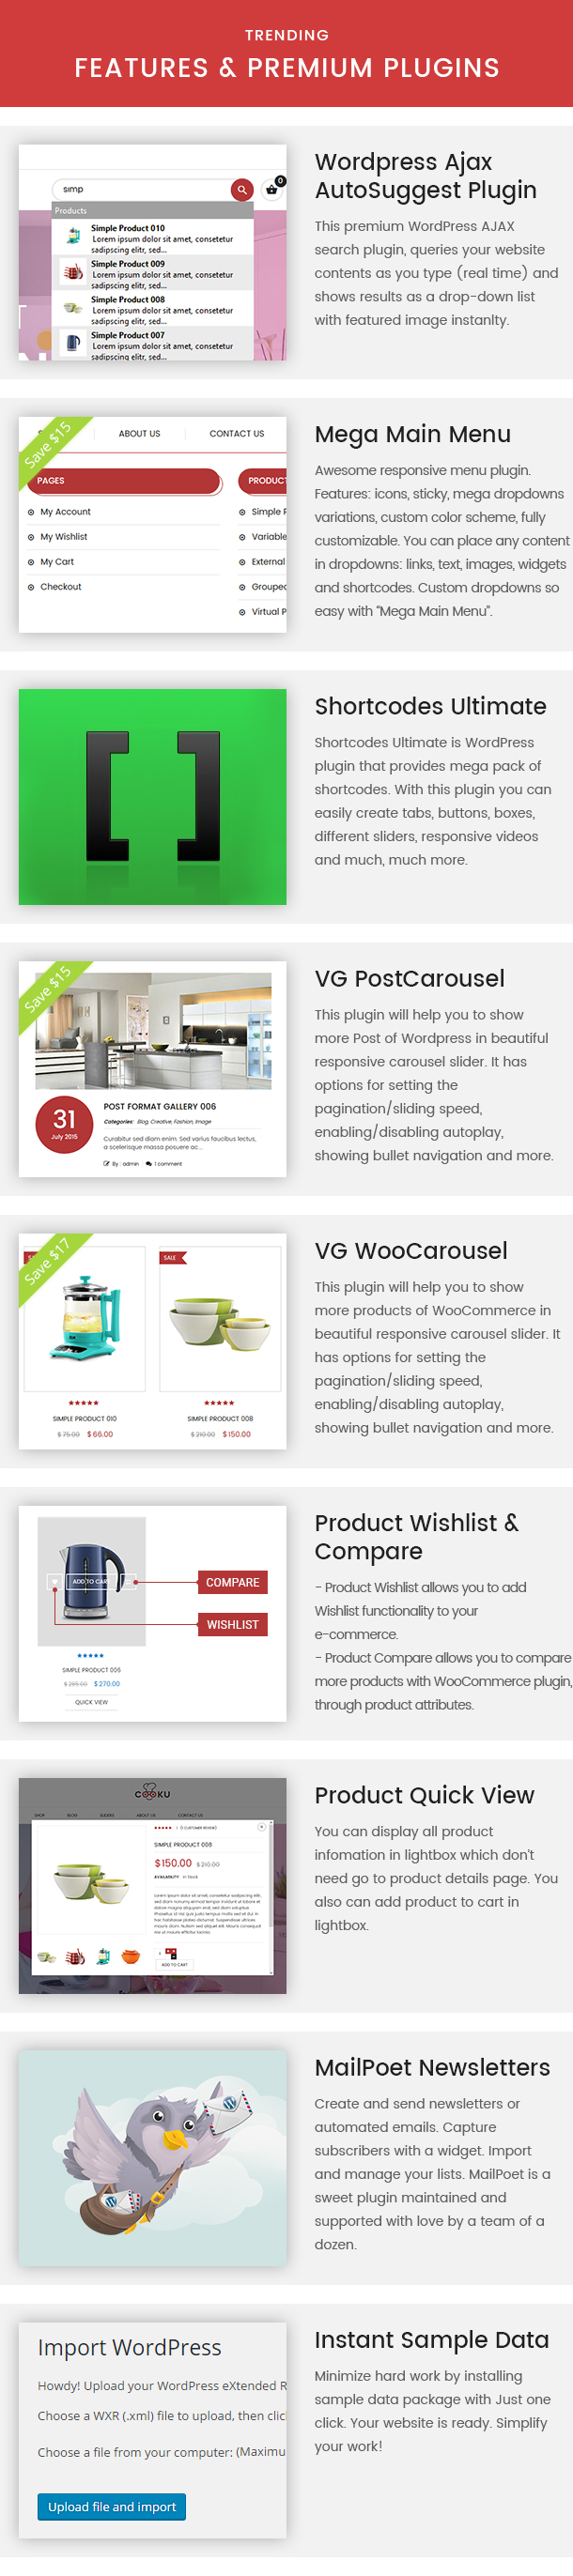 VG Cooku - Clean, Simple WooCommerce WordPress Theme - 29